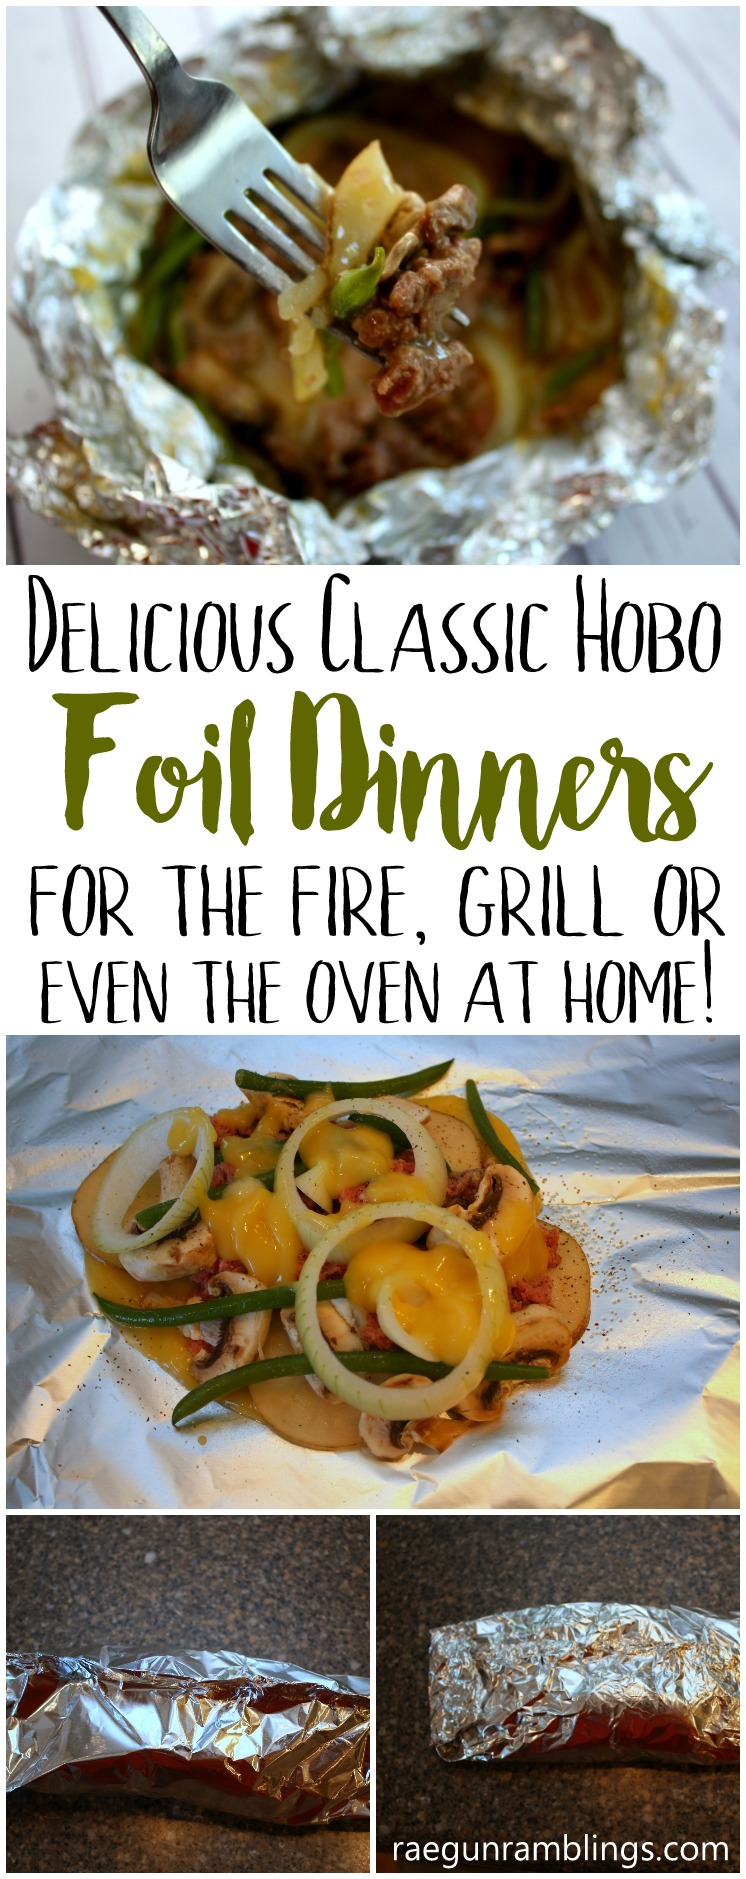 it's a keeper. Definitely our favorite version of classic hobo dinners. great foil packet recipe